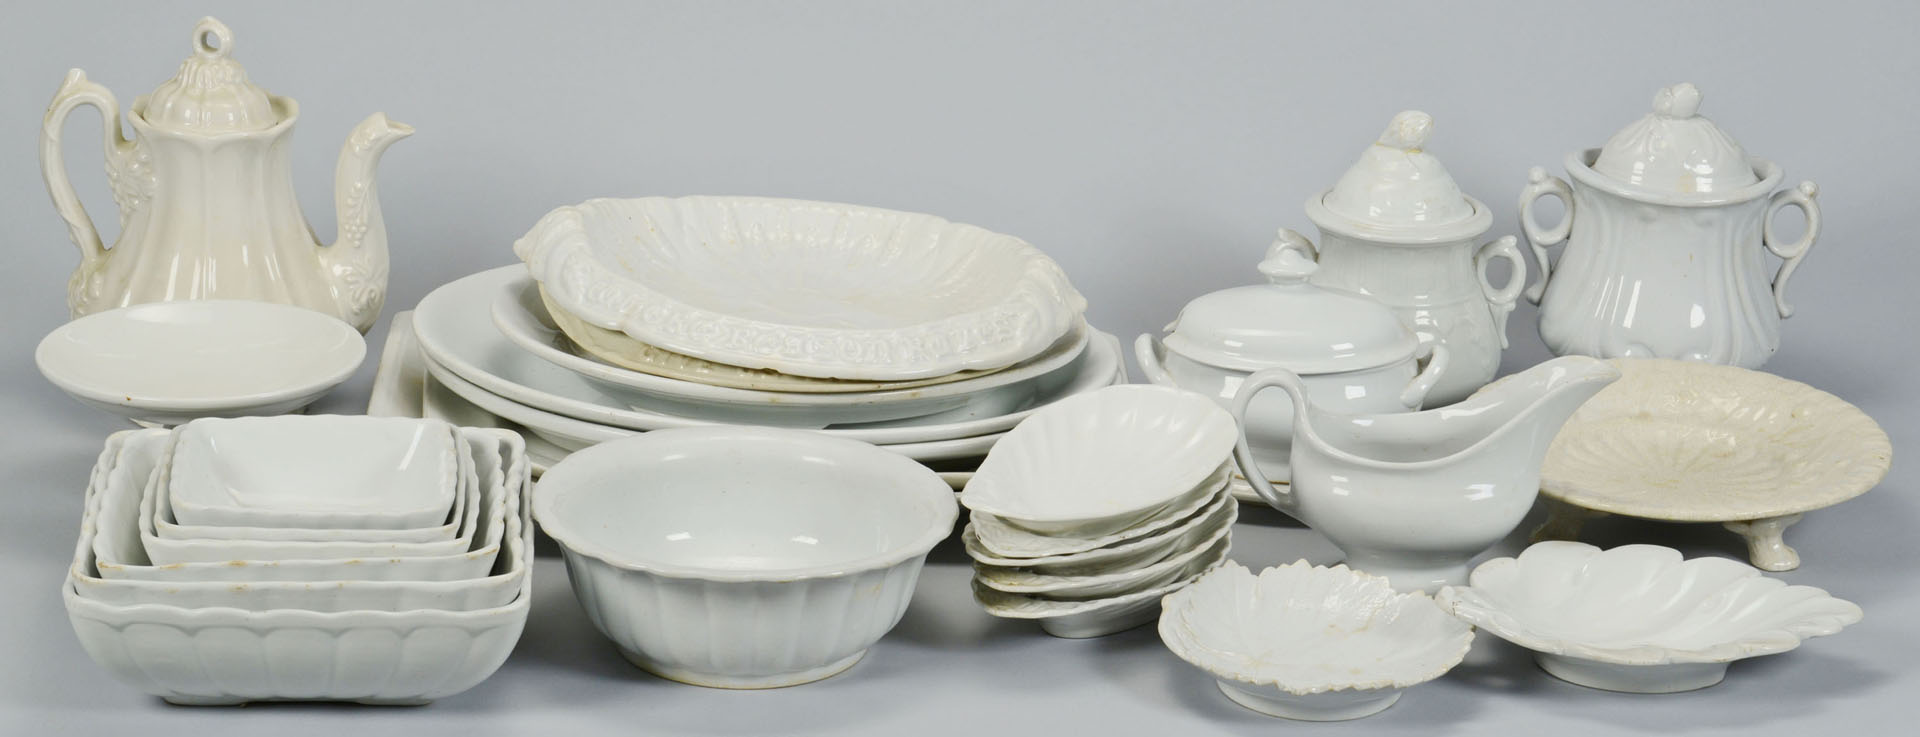 Large grouping of white ironstone, 28 Pieces